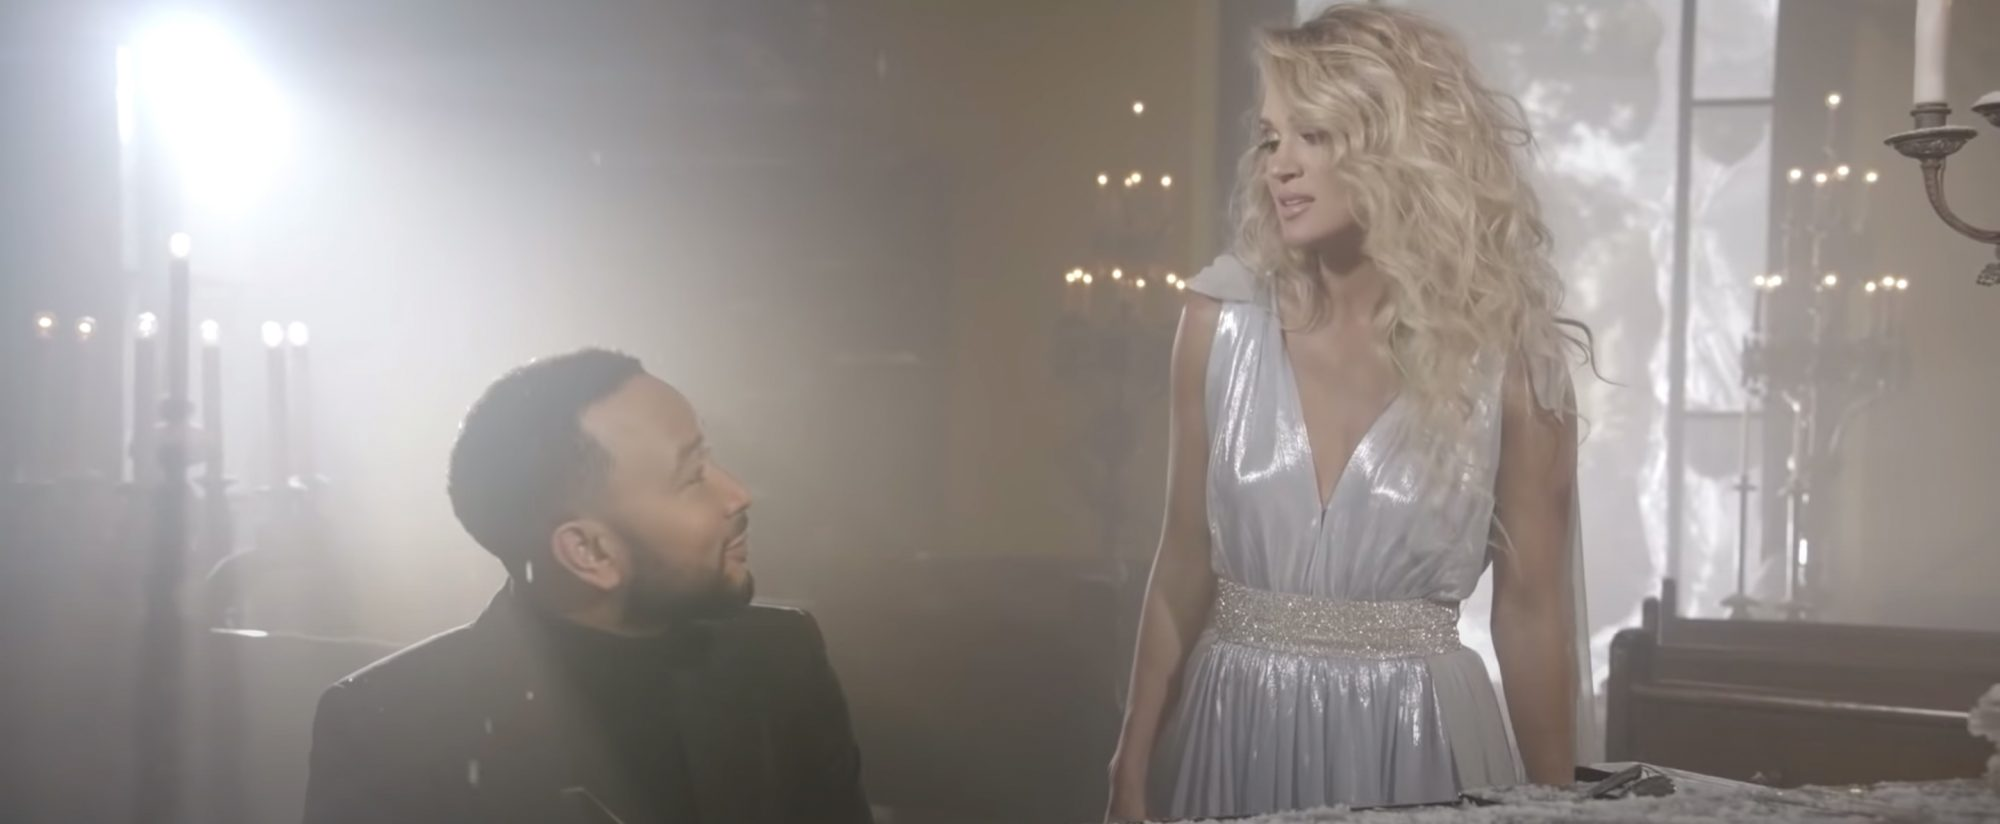 Carrie Underwood John Legend Release Music Video For Hallelujah People Com Animation video production, whiteboard video production, create business video. carrie underwood john legend release